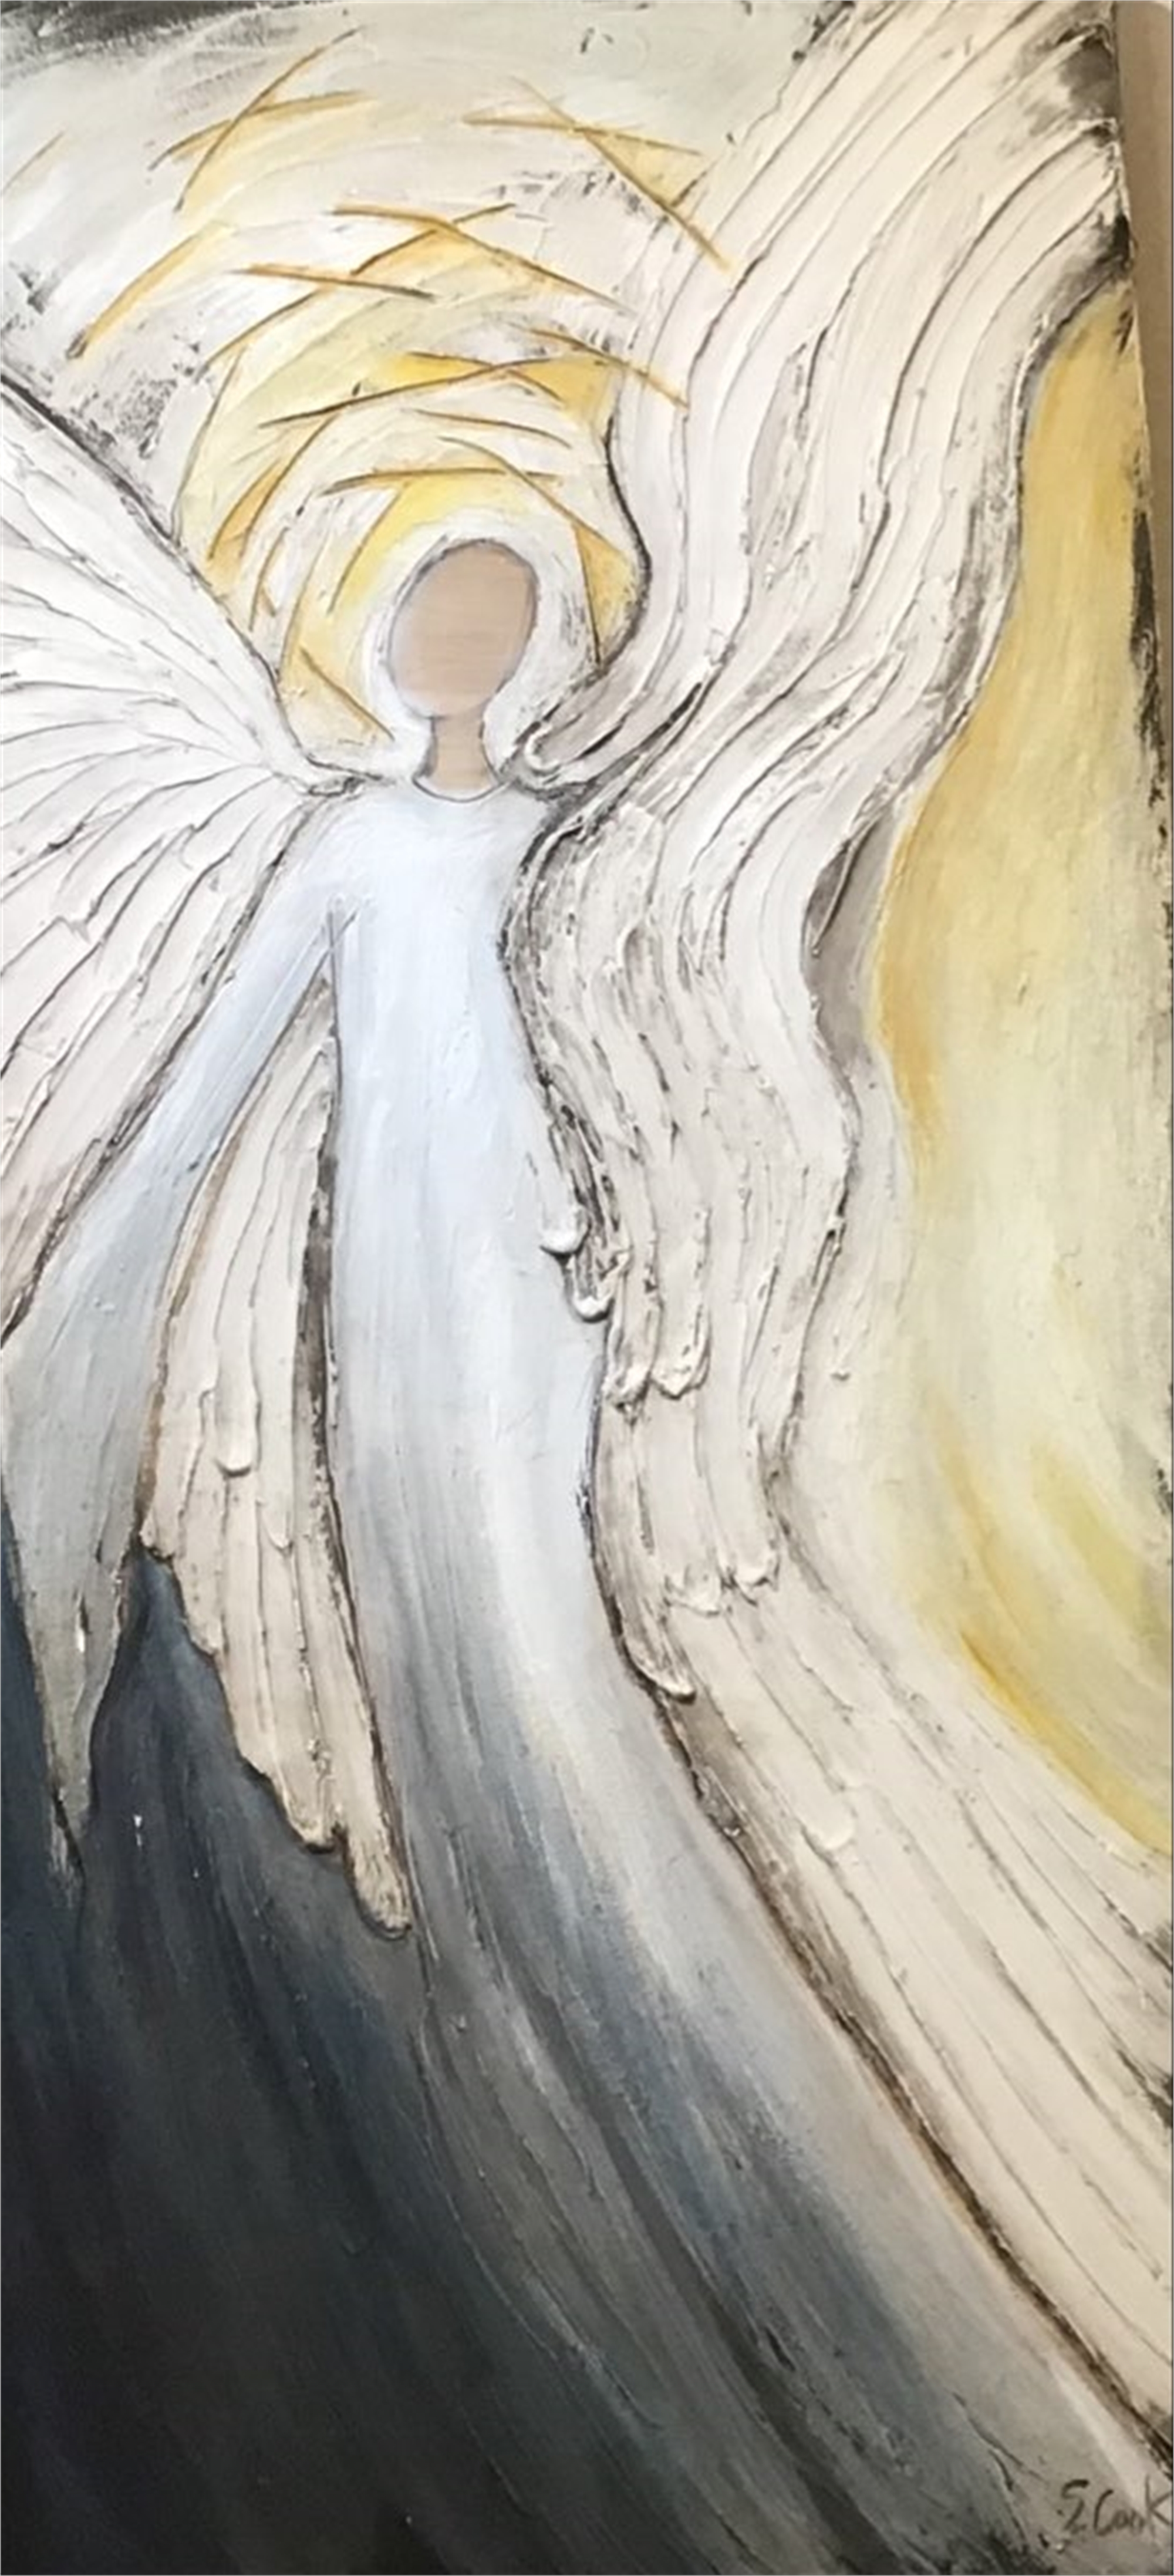 Rejoice Angel by Sherry Cook